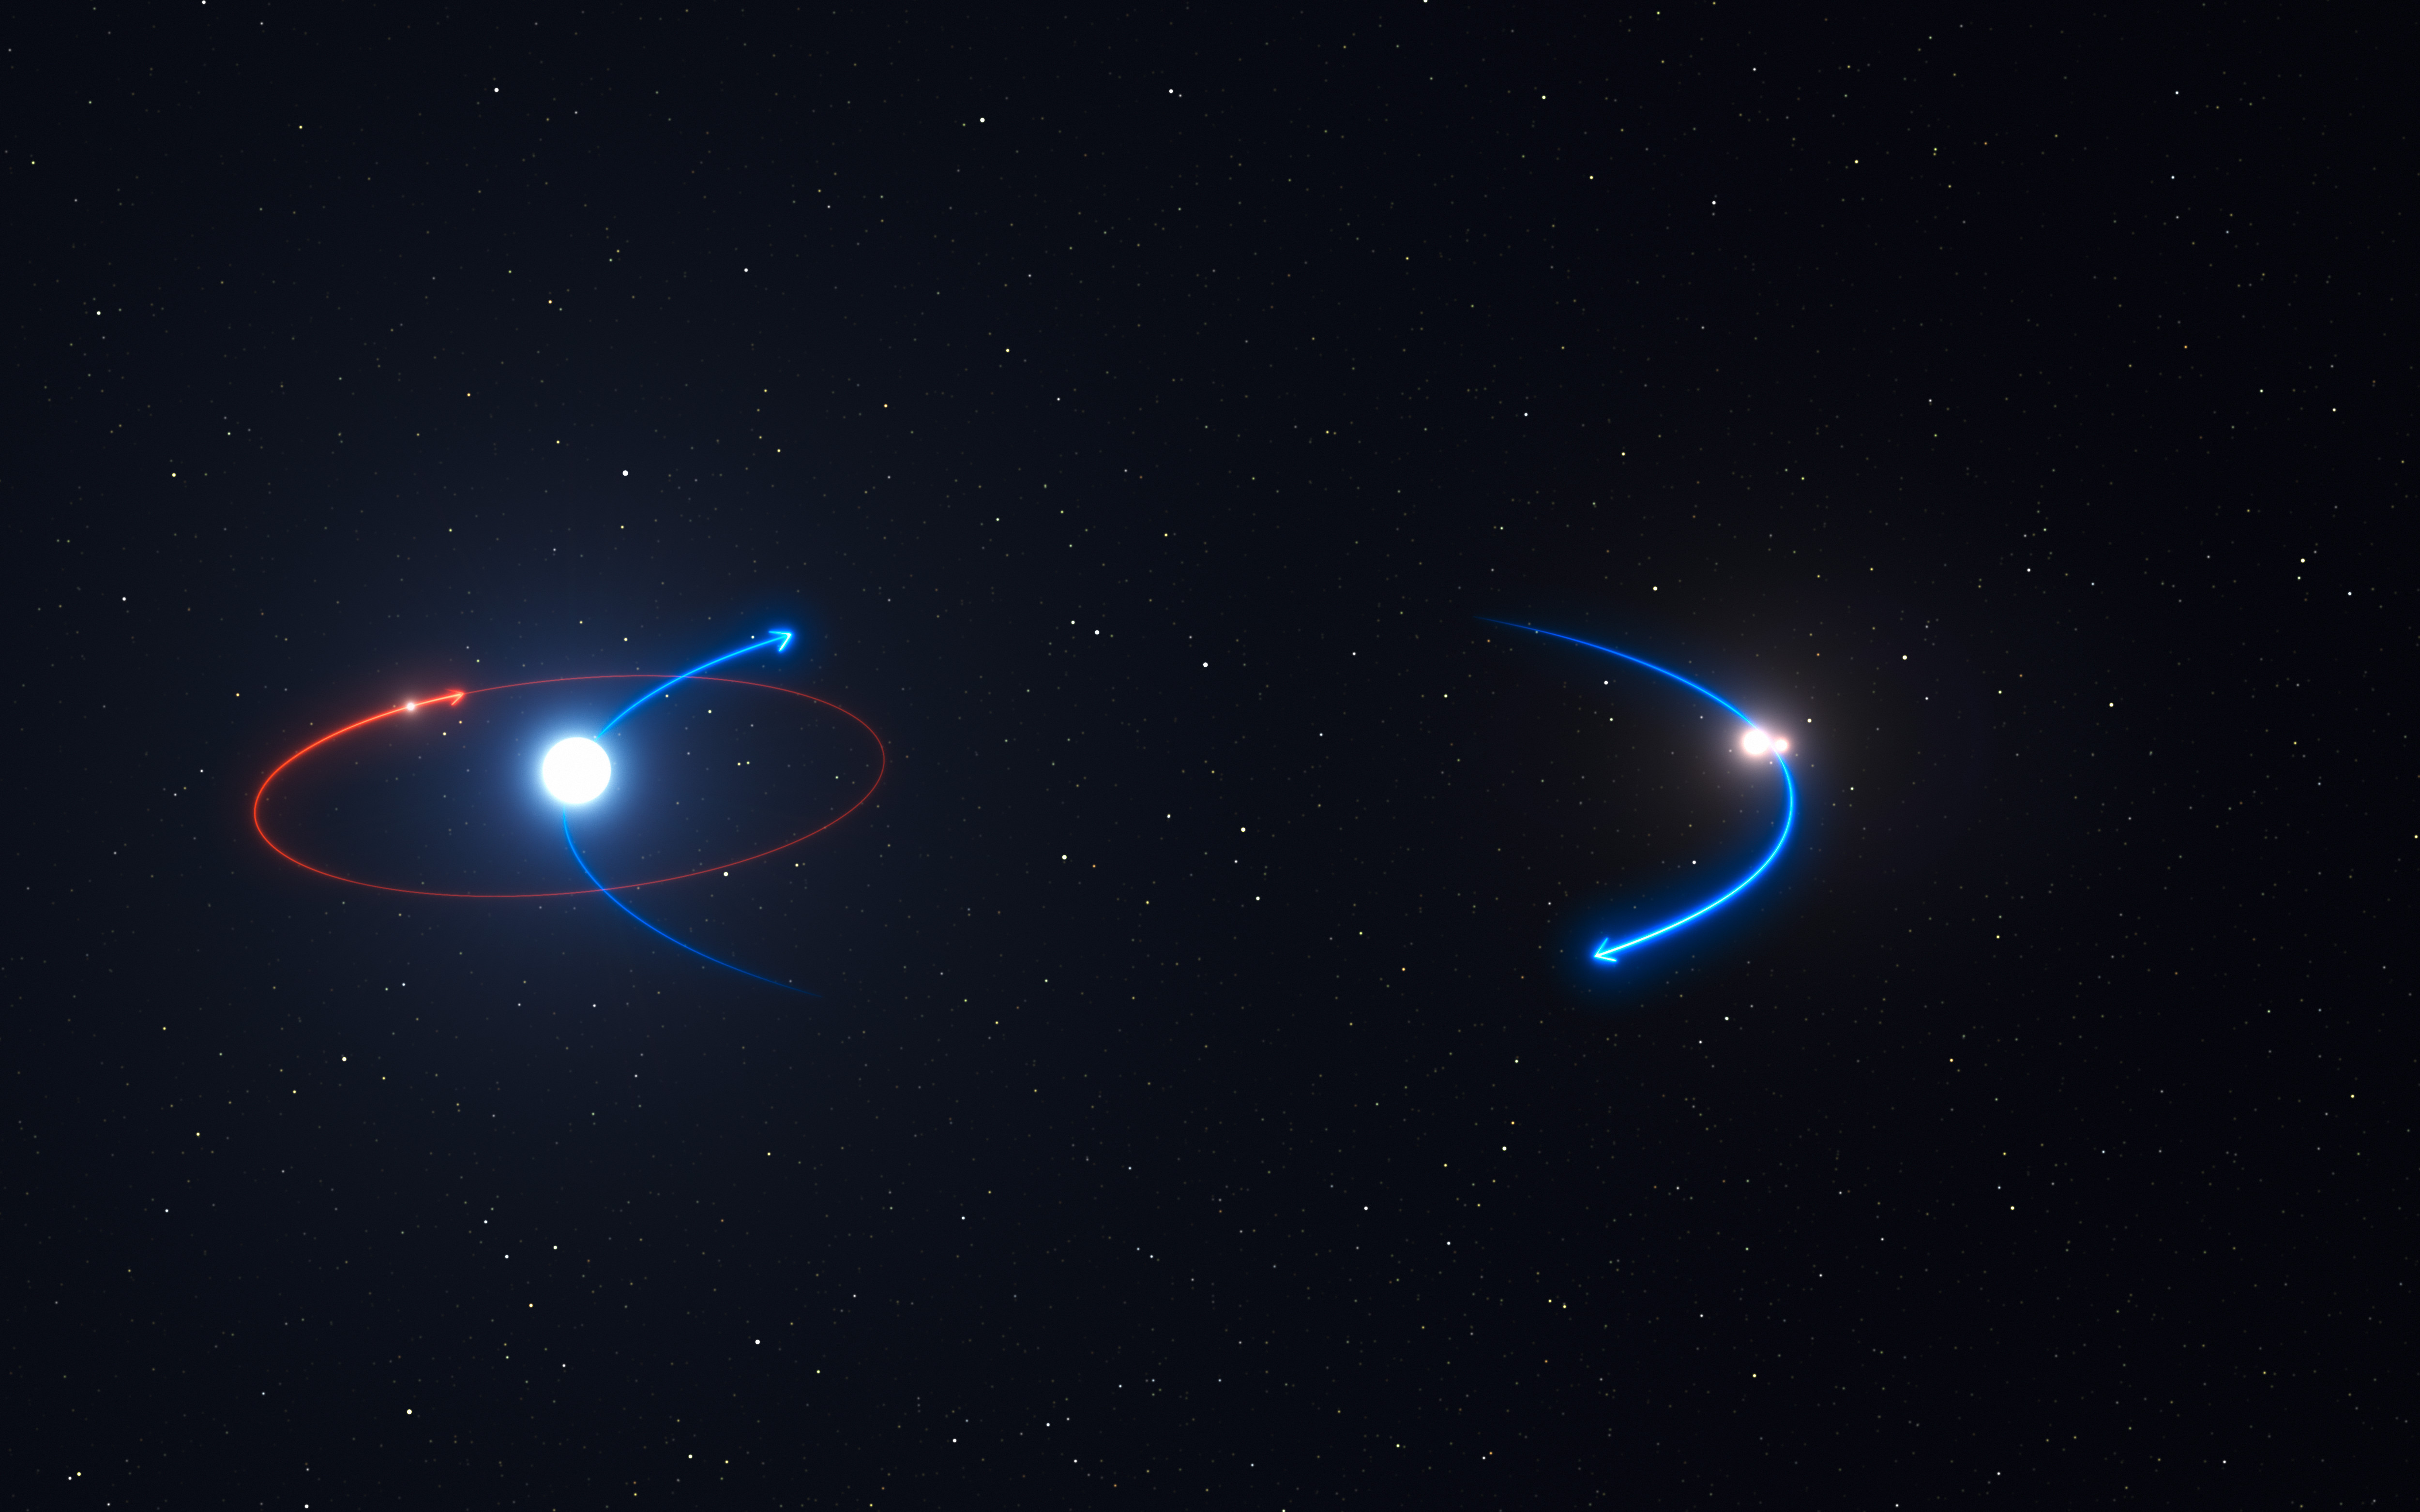 newly discovered planet has three suns in the headlines this graphic shows the orbit of the planet in the hd 131399 system red line